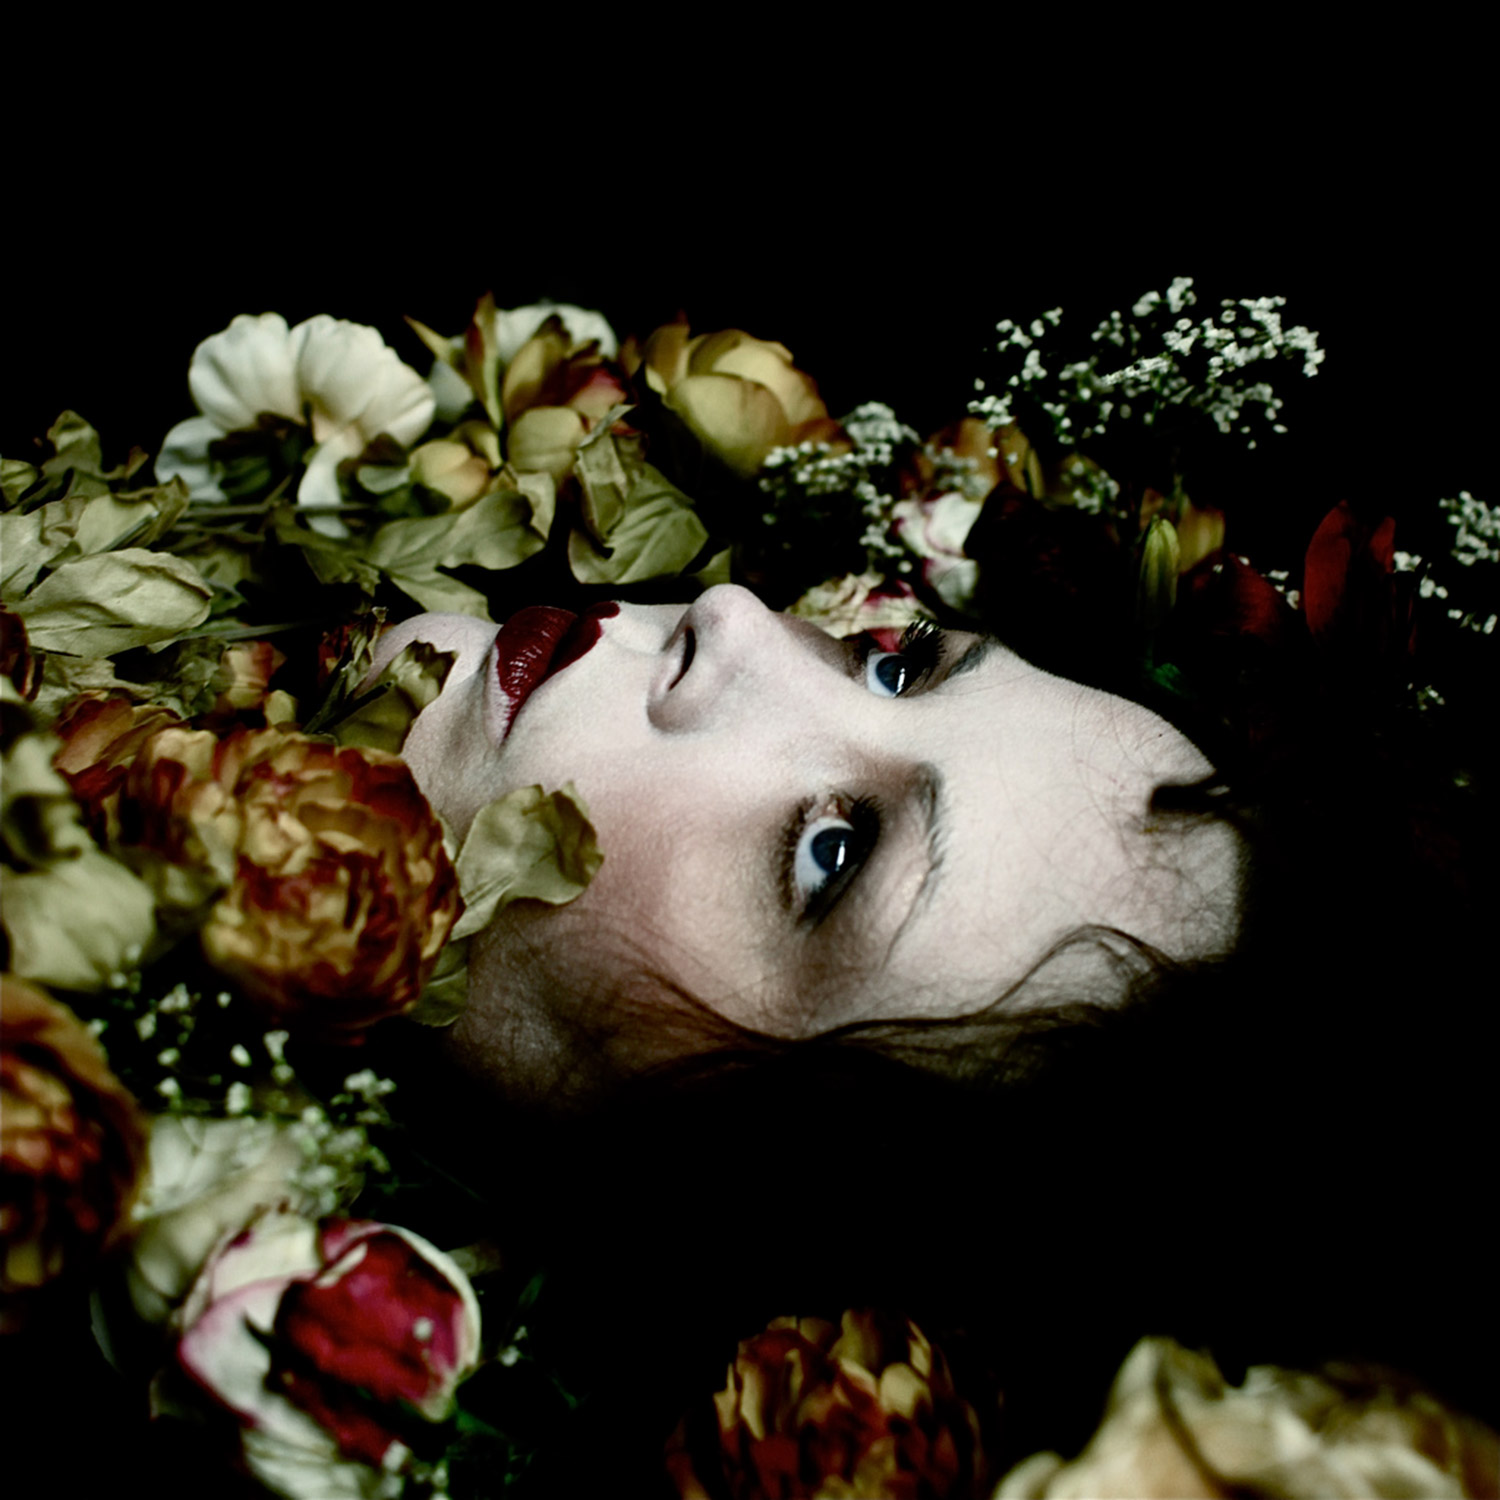 Helen Warner, Love's Last Gift - woman's face surrounded by flowers